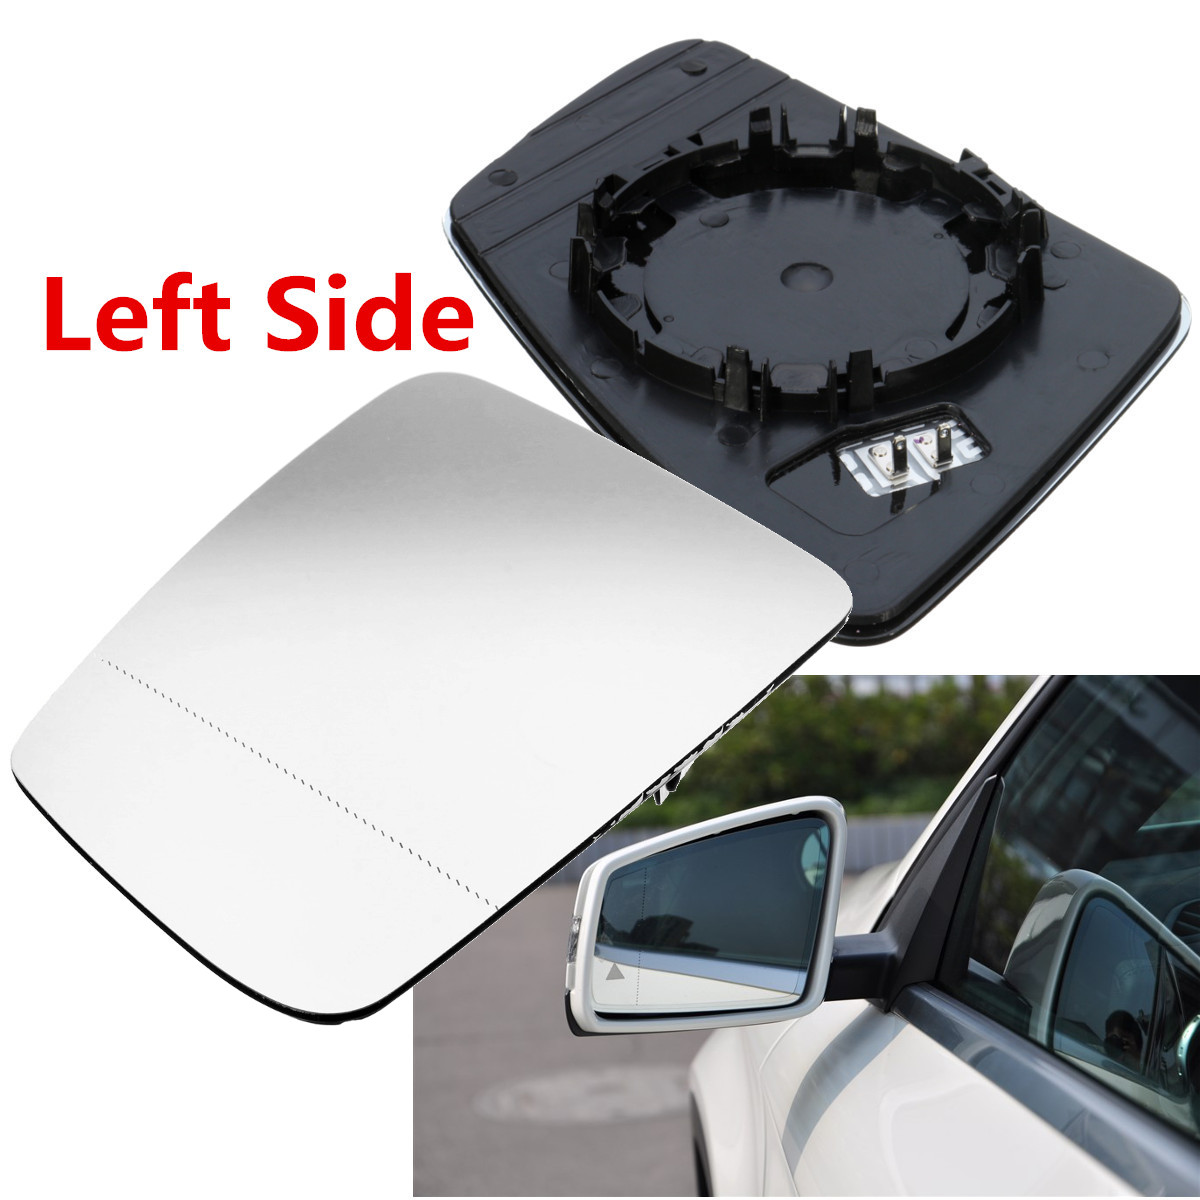 For Volvo v70 2000-2003 Left side Aspheric electric wing mirror glass plate